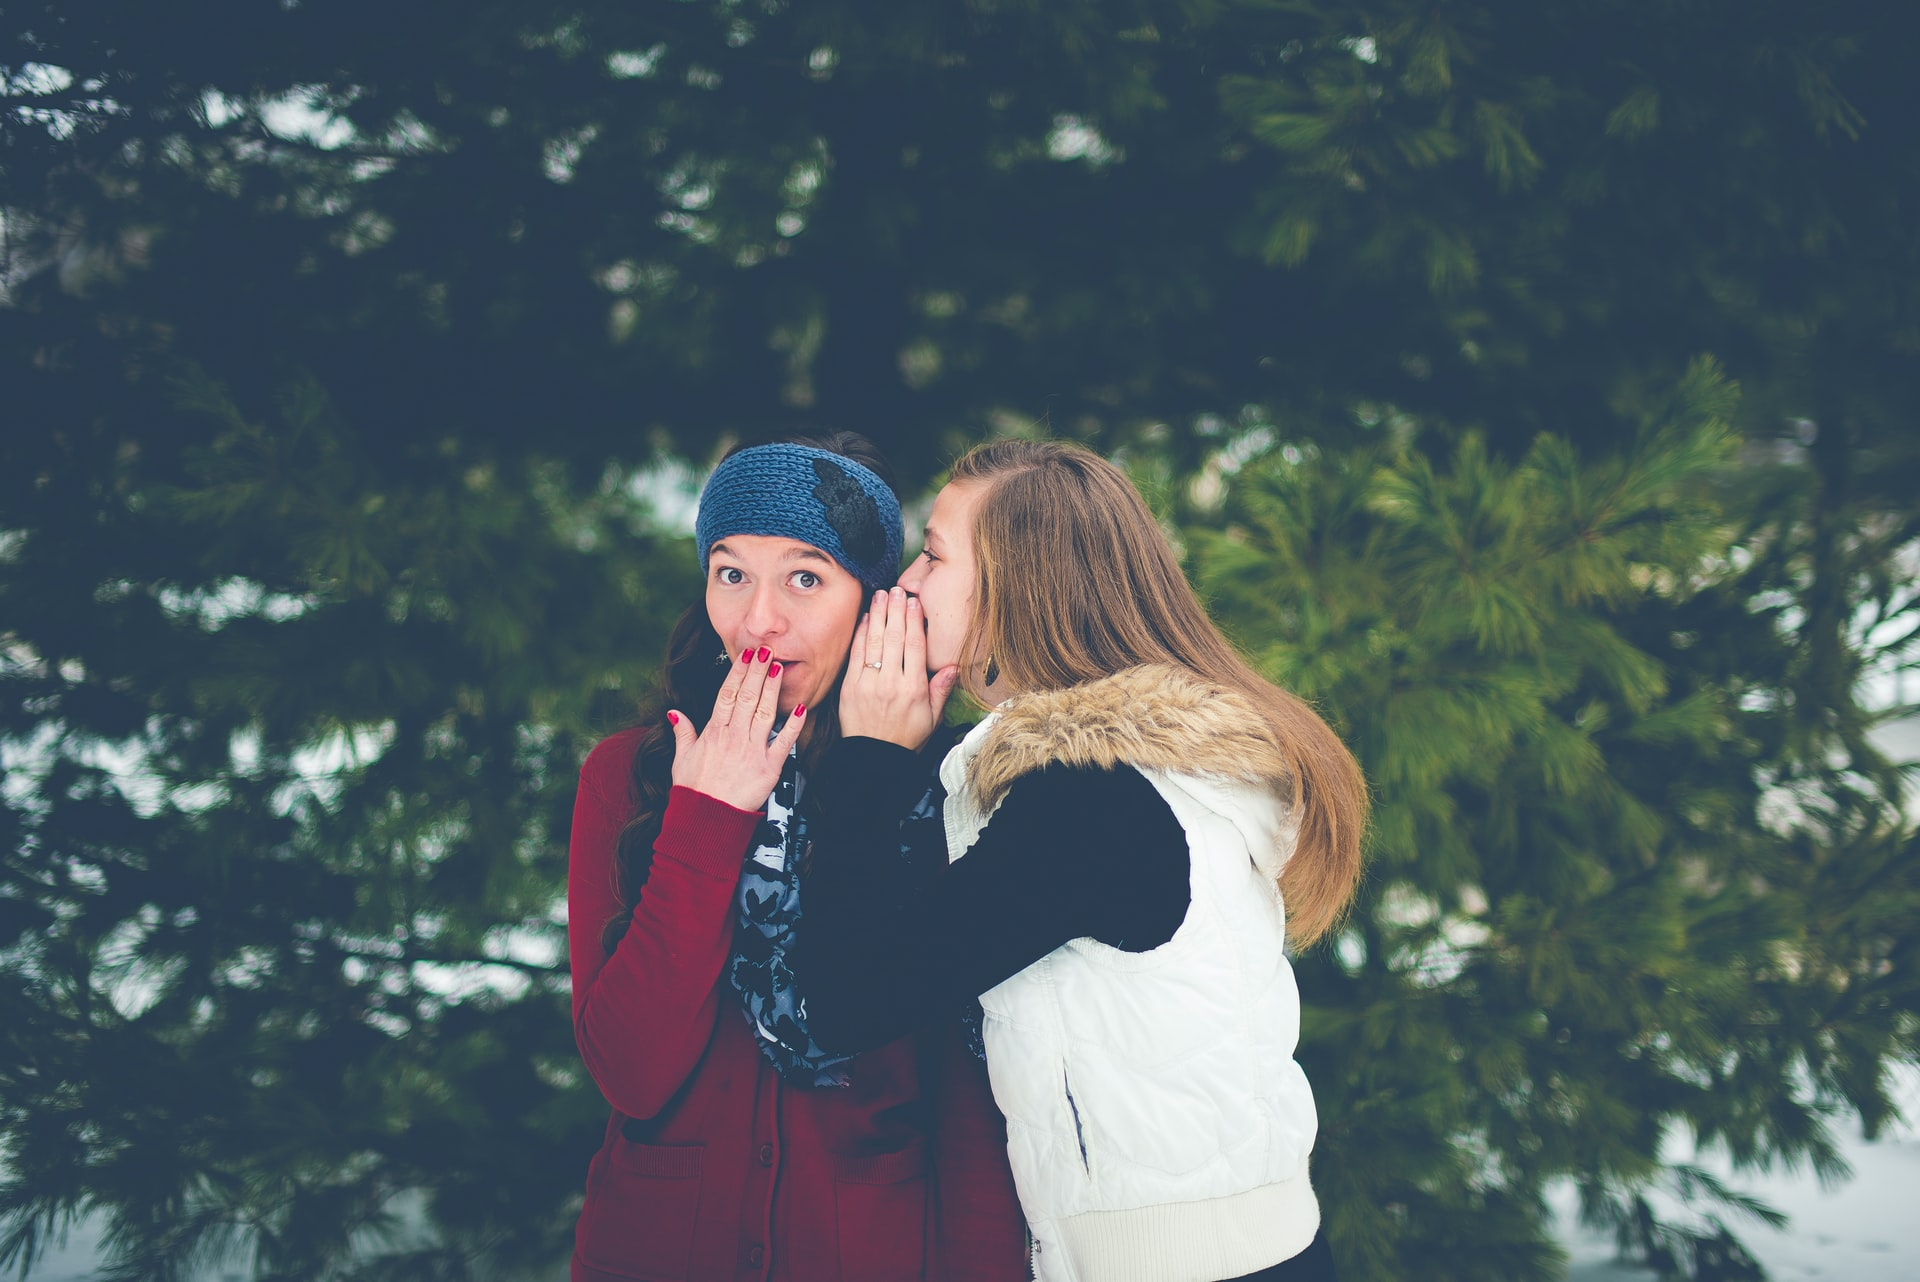 5 Zodiac Signs That Love To Gossip And Are Incredibly Nosy